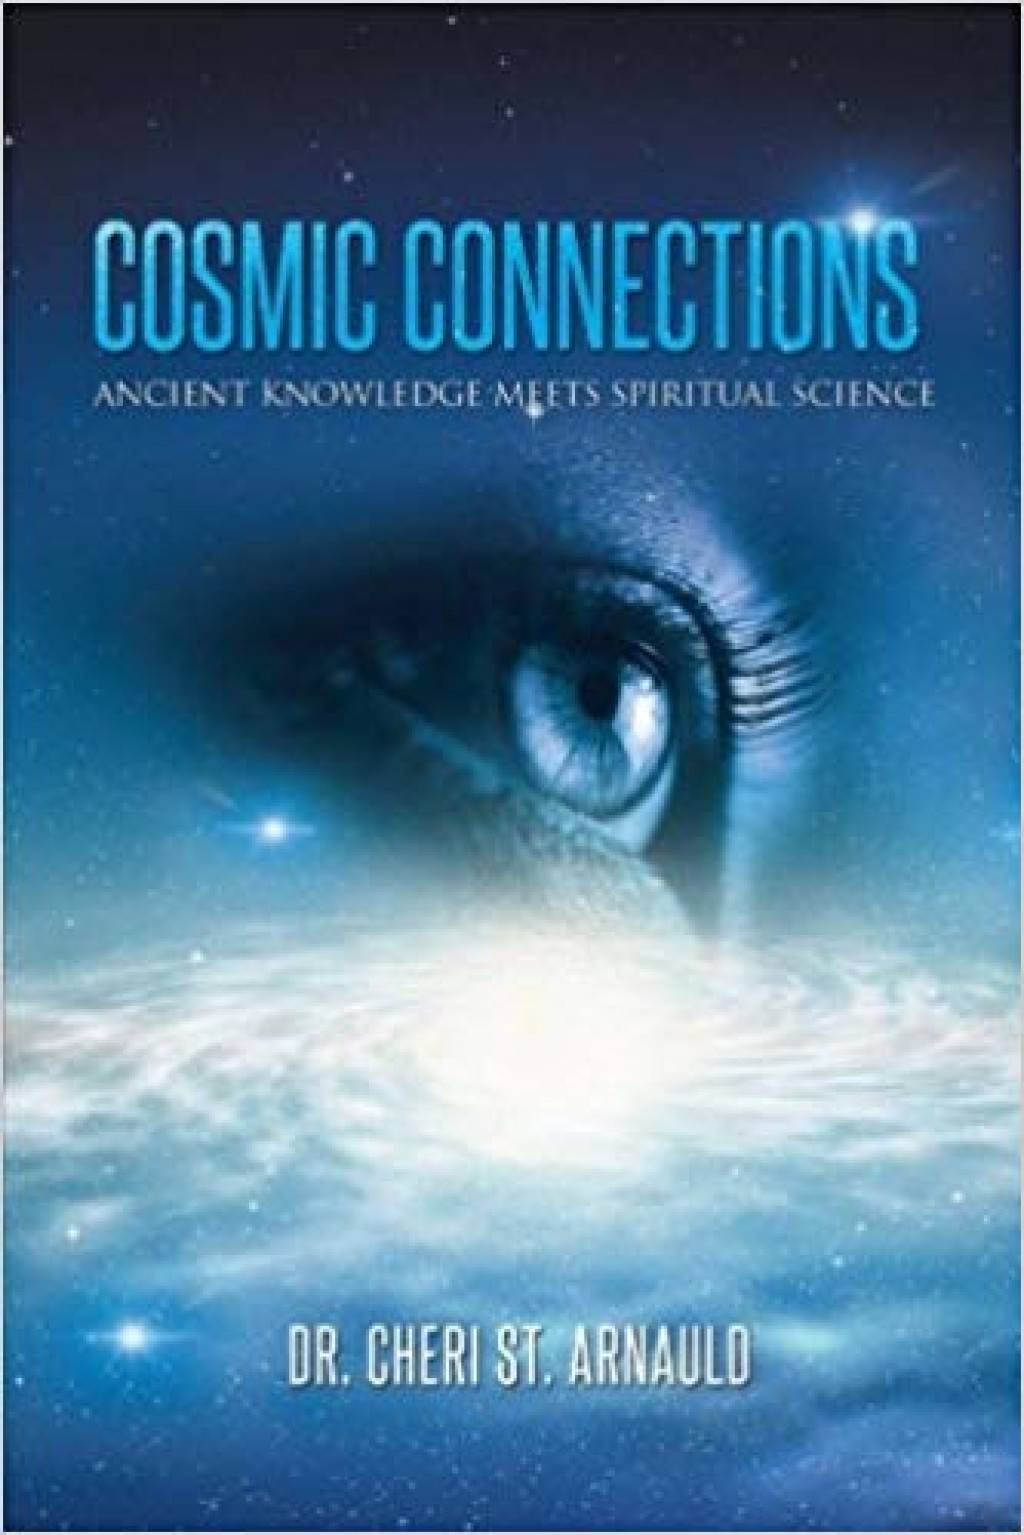 Cosmic Connections Ancient Knowledge Meets Spiritual Science